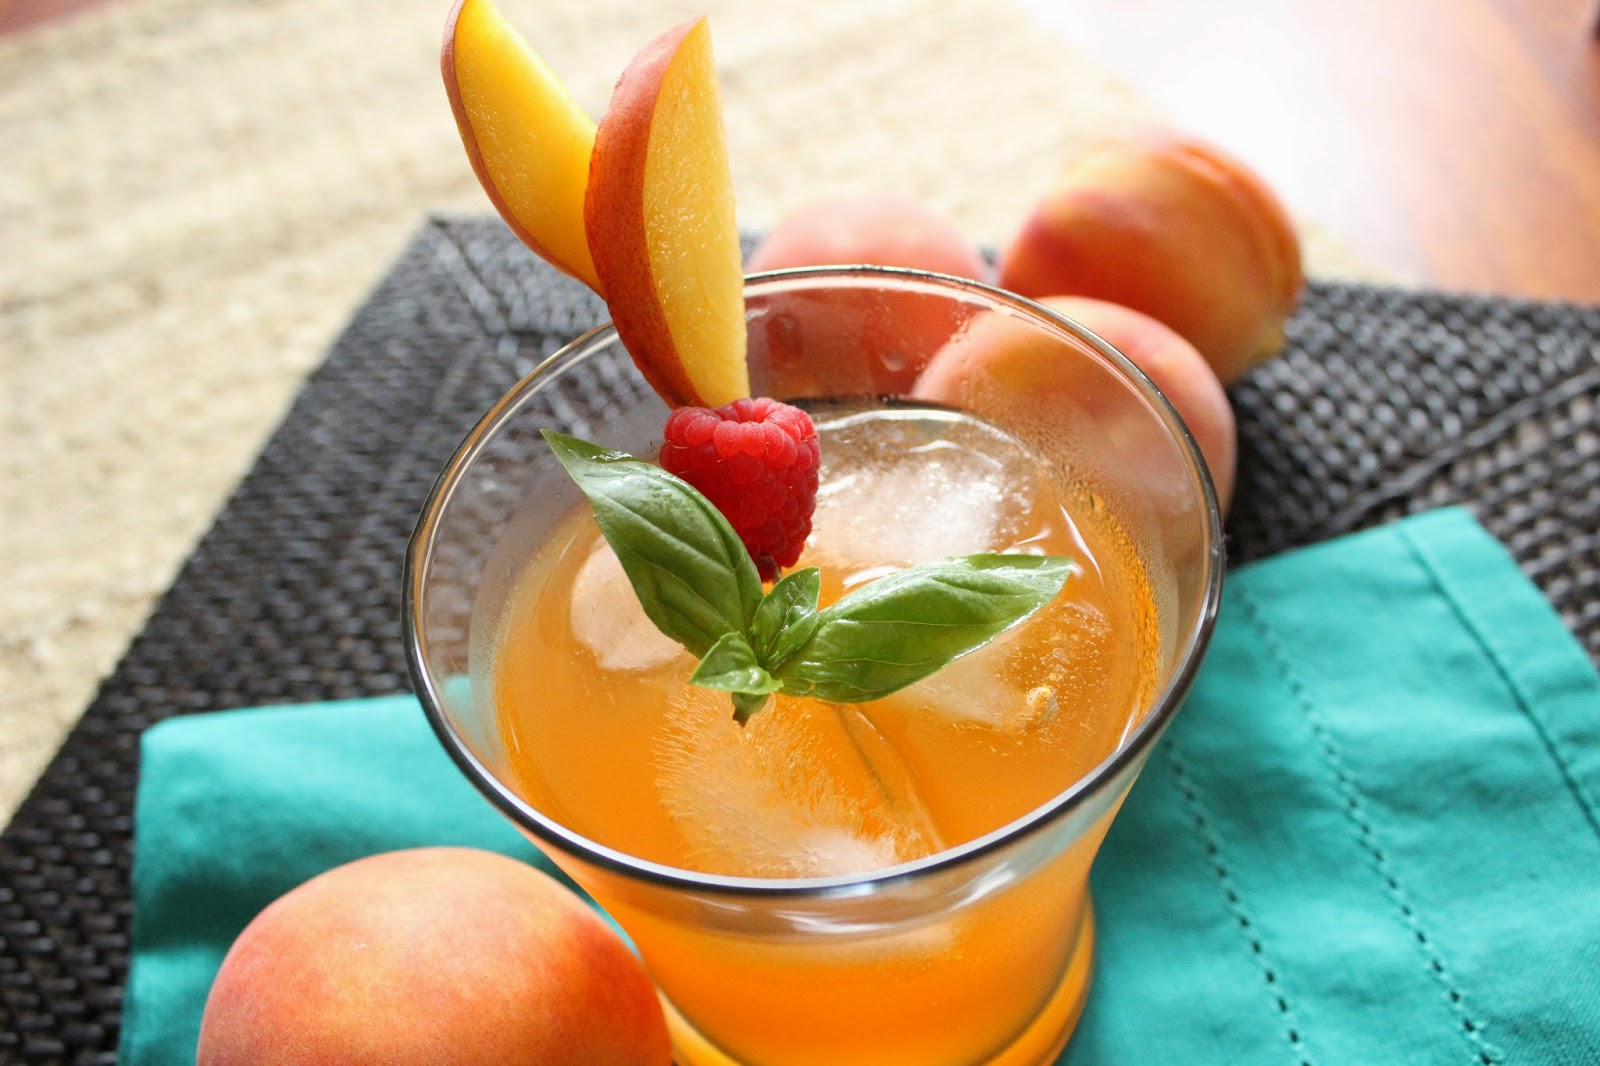 Peach Lemonade Fizzler Drink Recipe